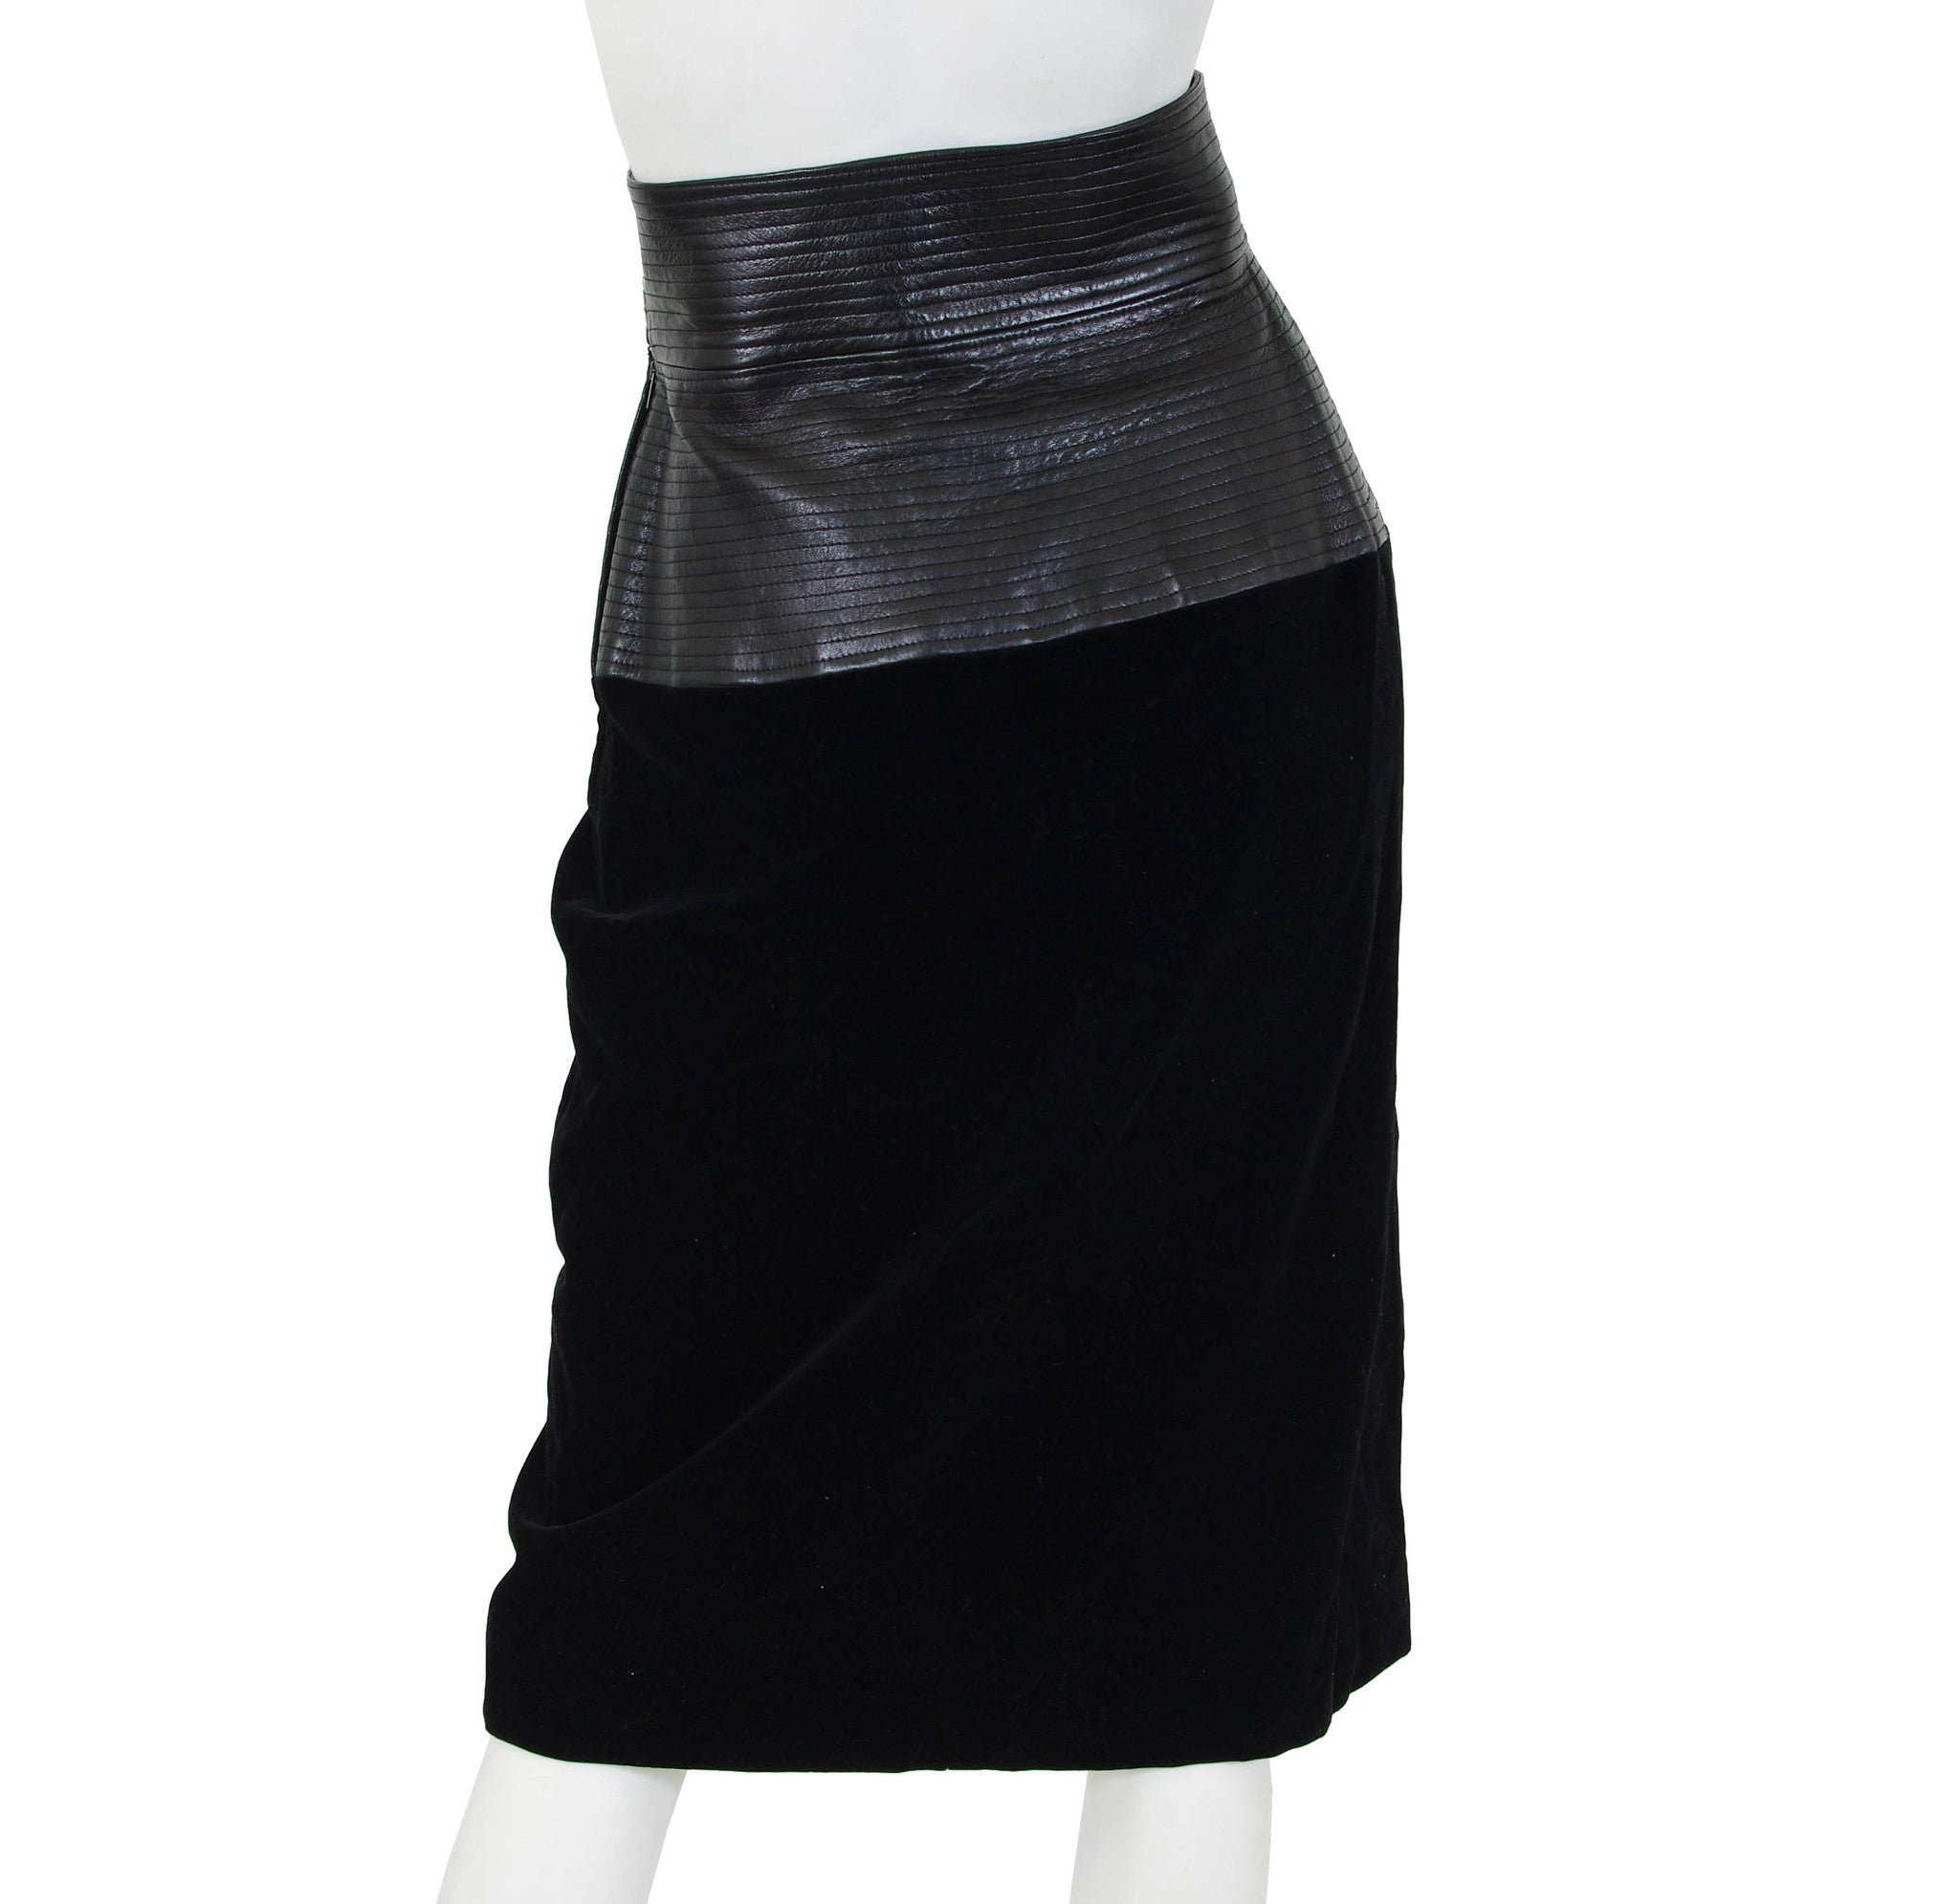 1980s Black Leather Corset & Velvet Skirt